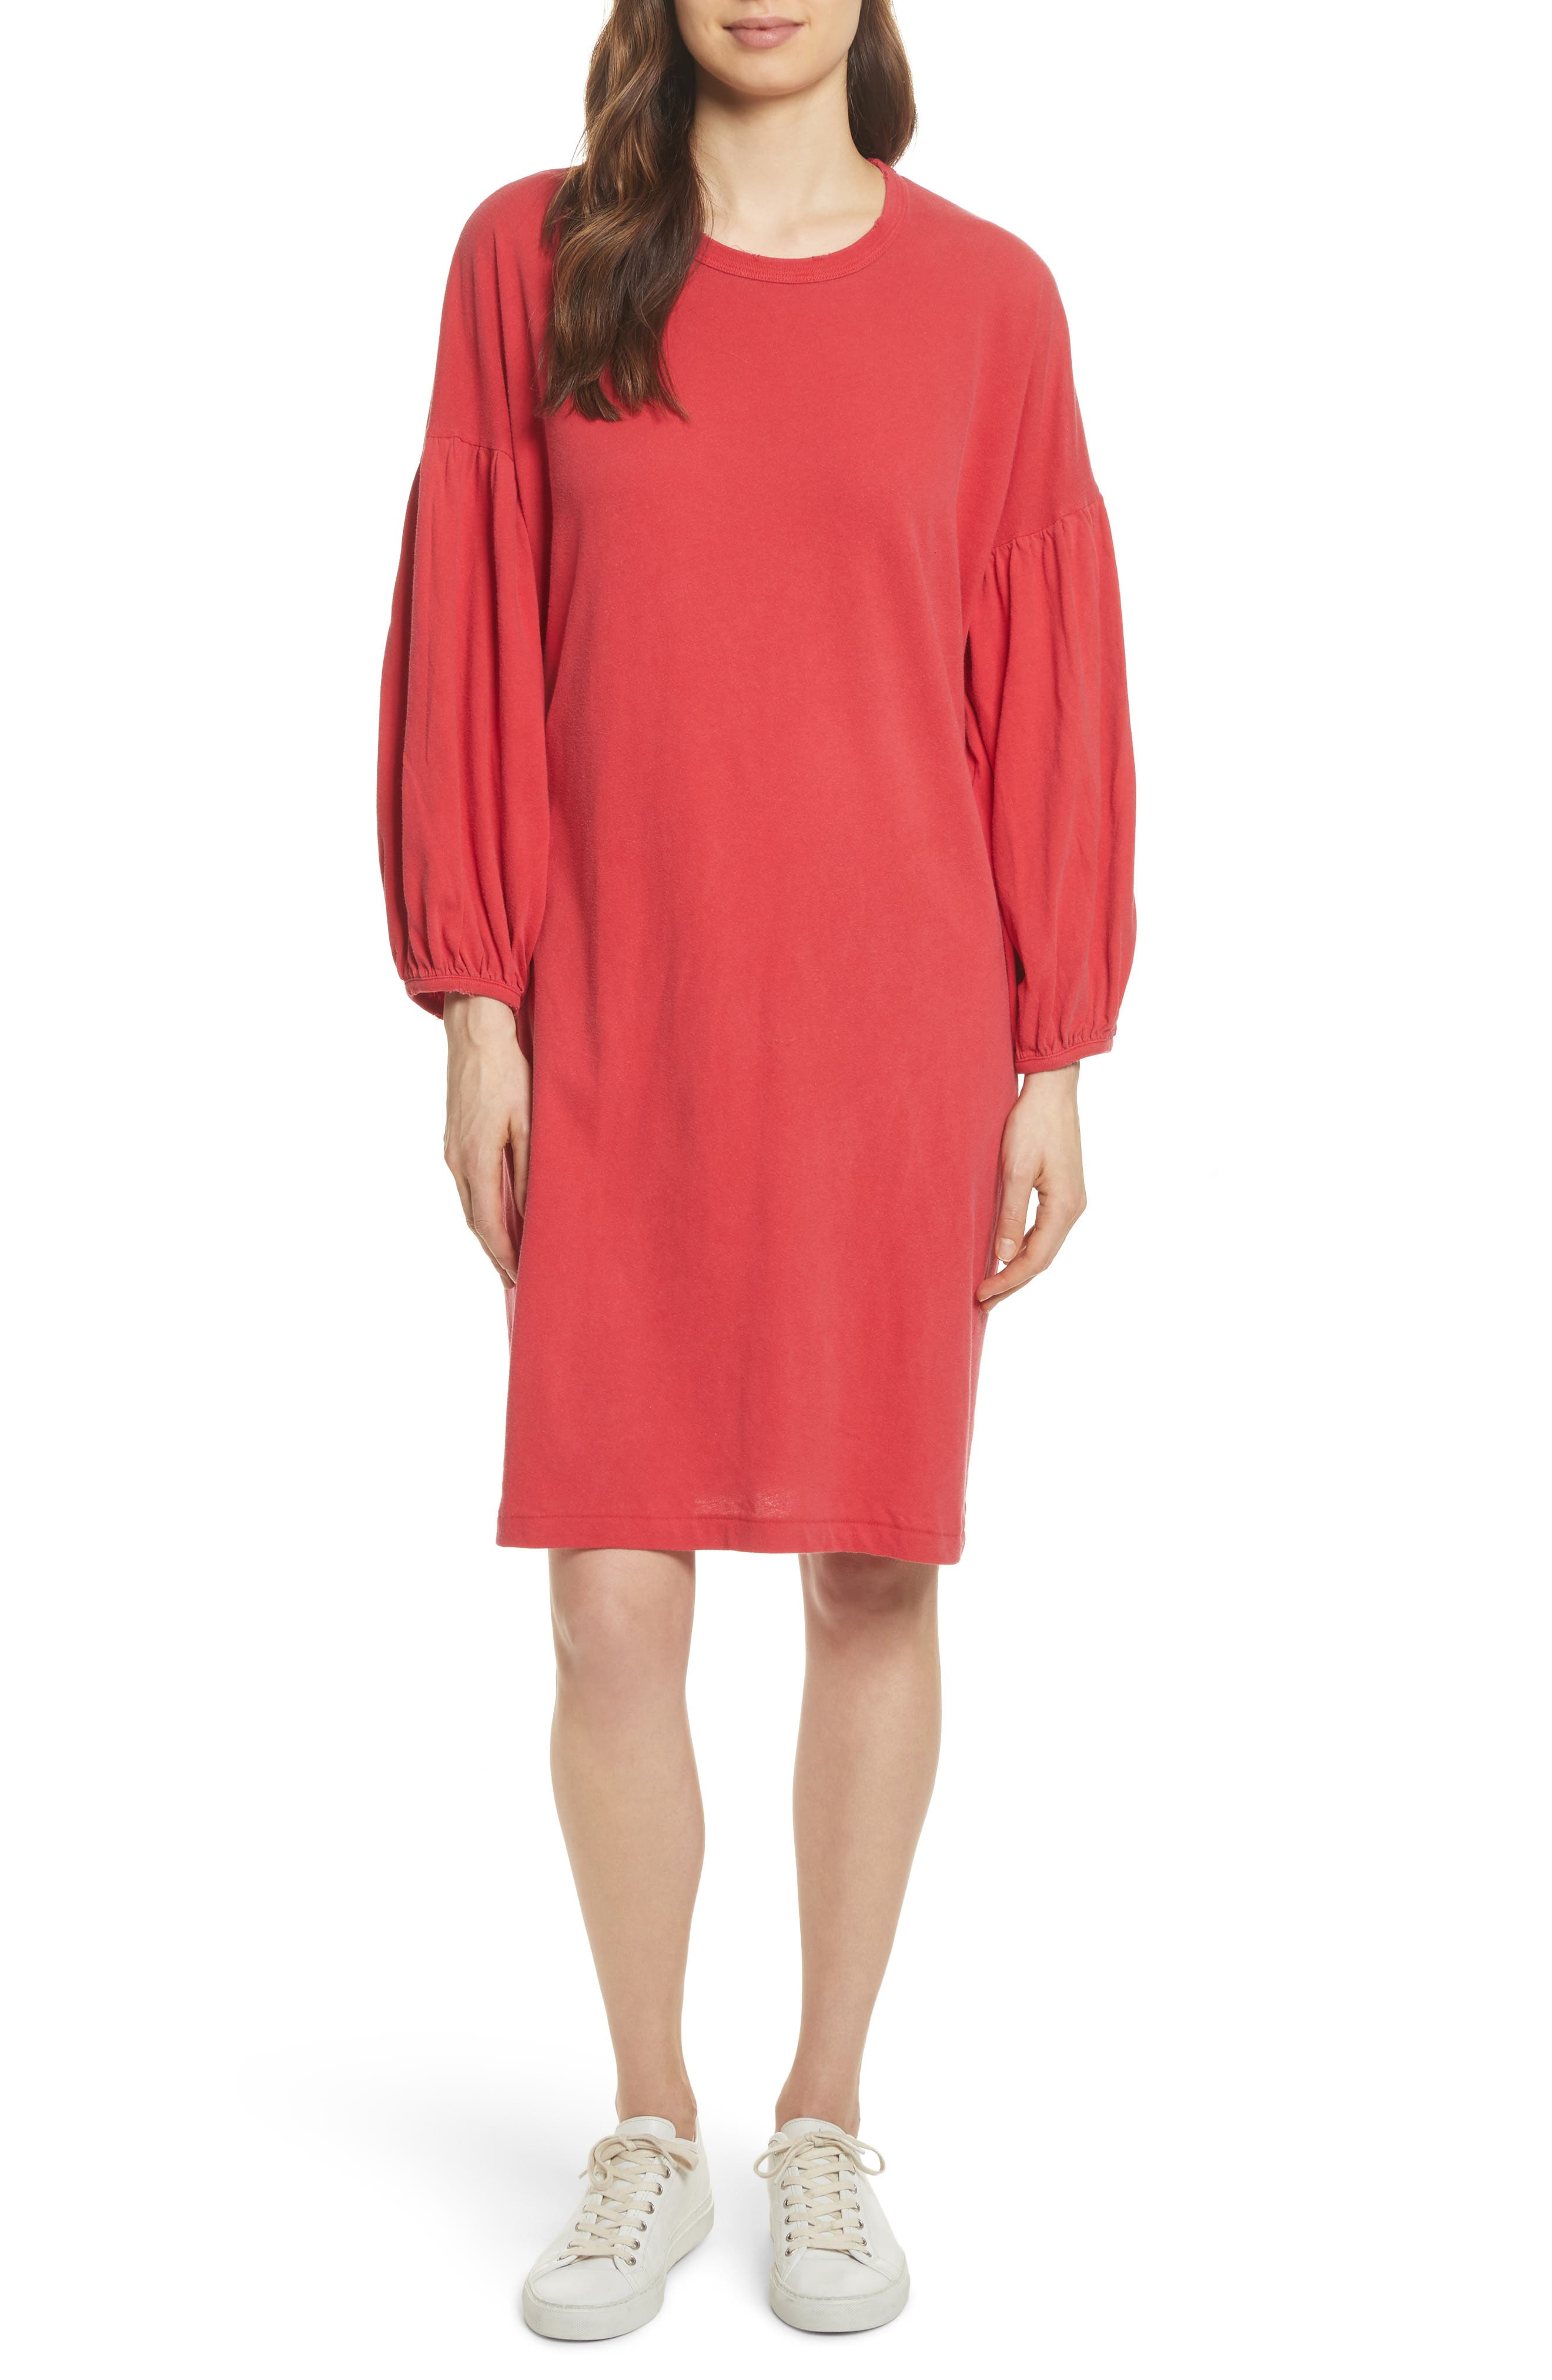 THE GREAT. The Bubble Sleeve Dress